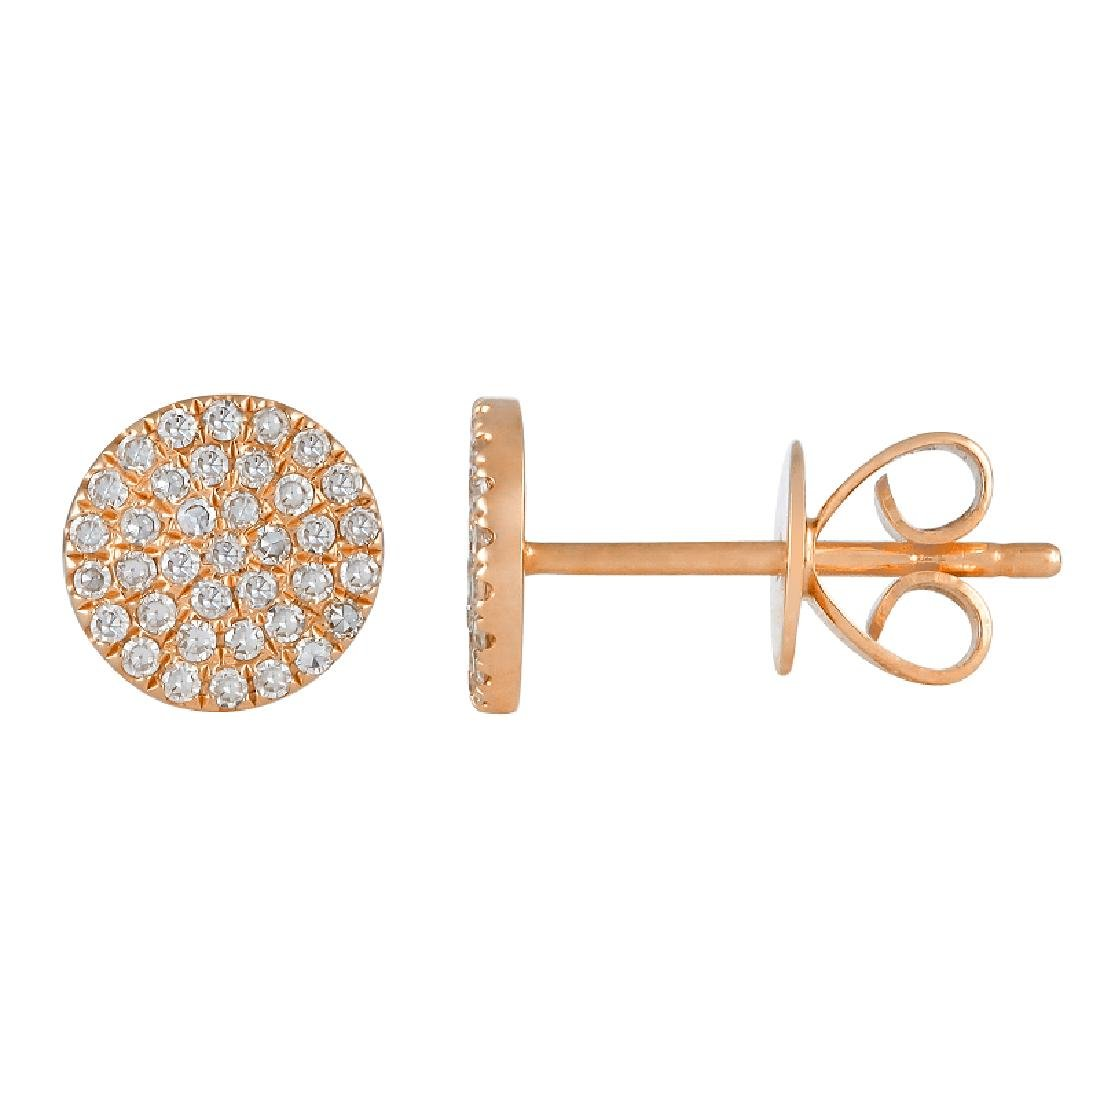 14KT Rose Gold Diamond Earrings